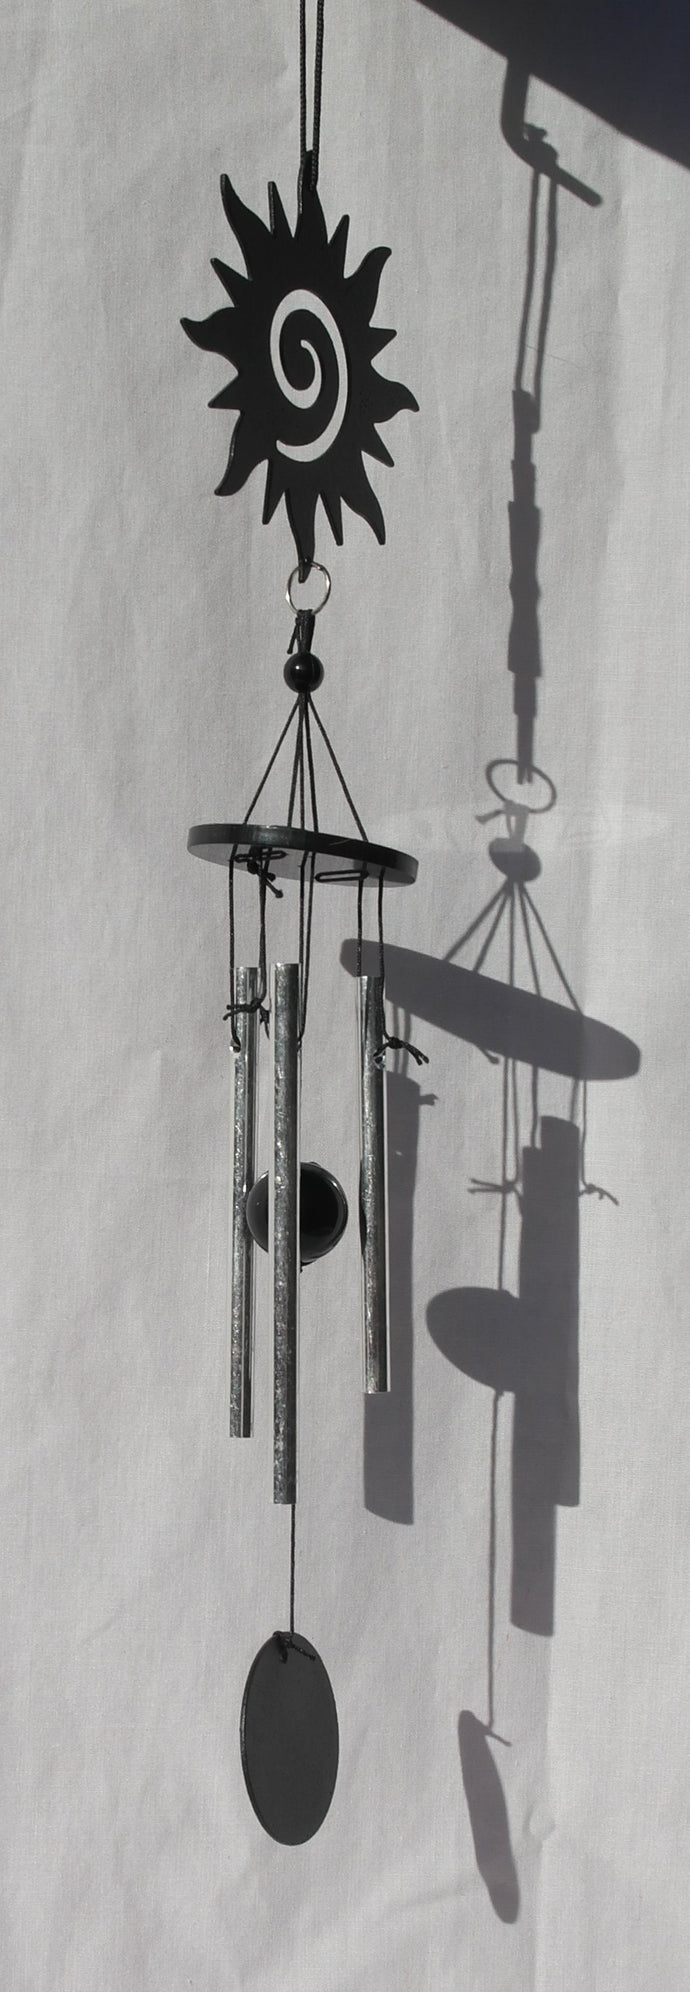 Sun and Moon Silhouette metal wind chime